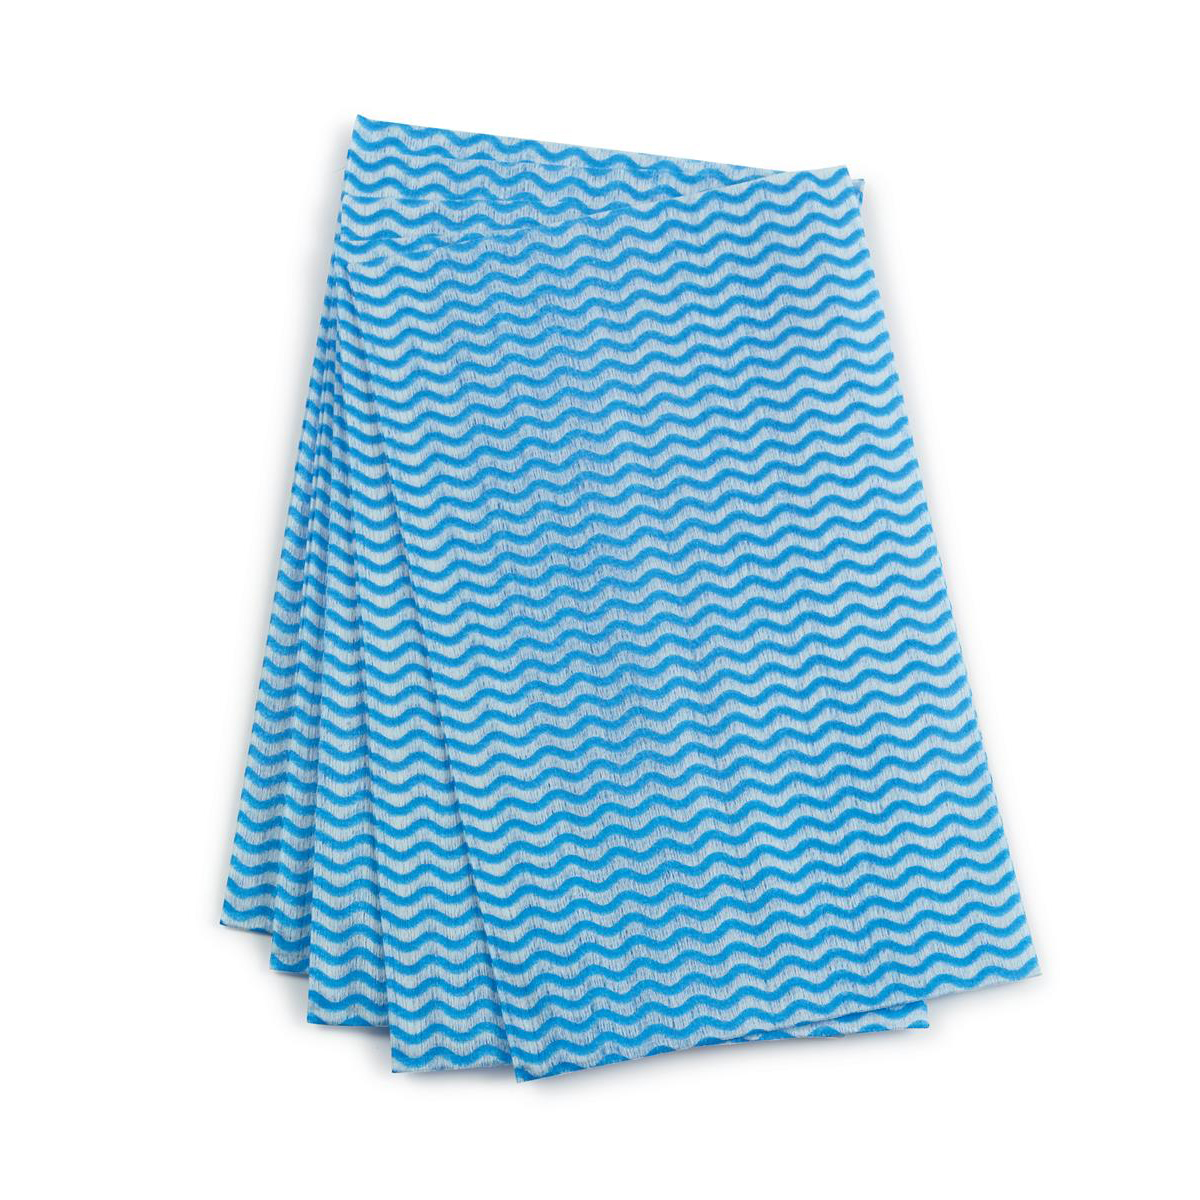 5 Star Facilities Cleaning Cloths Anti-microbial 40gsm W500xL300mm Wavy Line Blue [Pack 50]